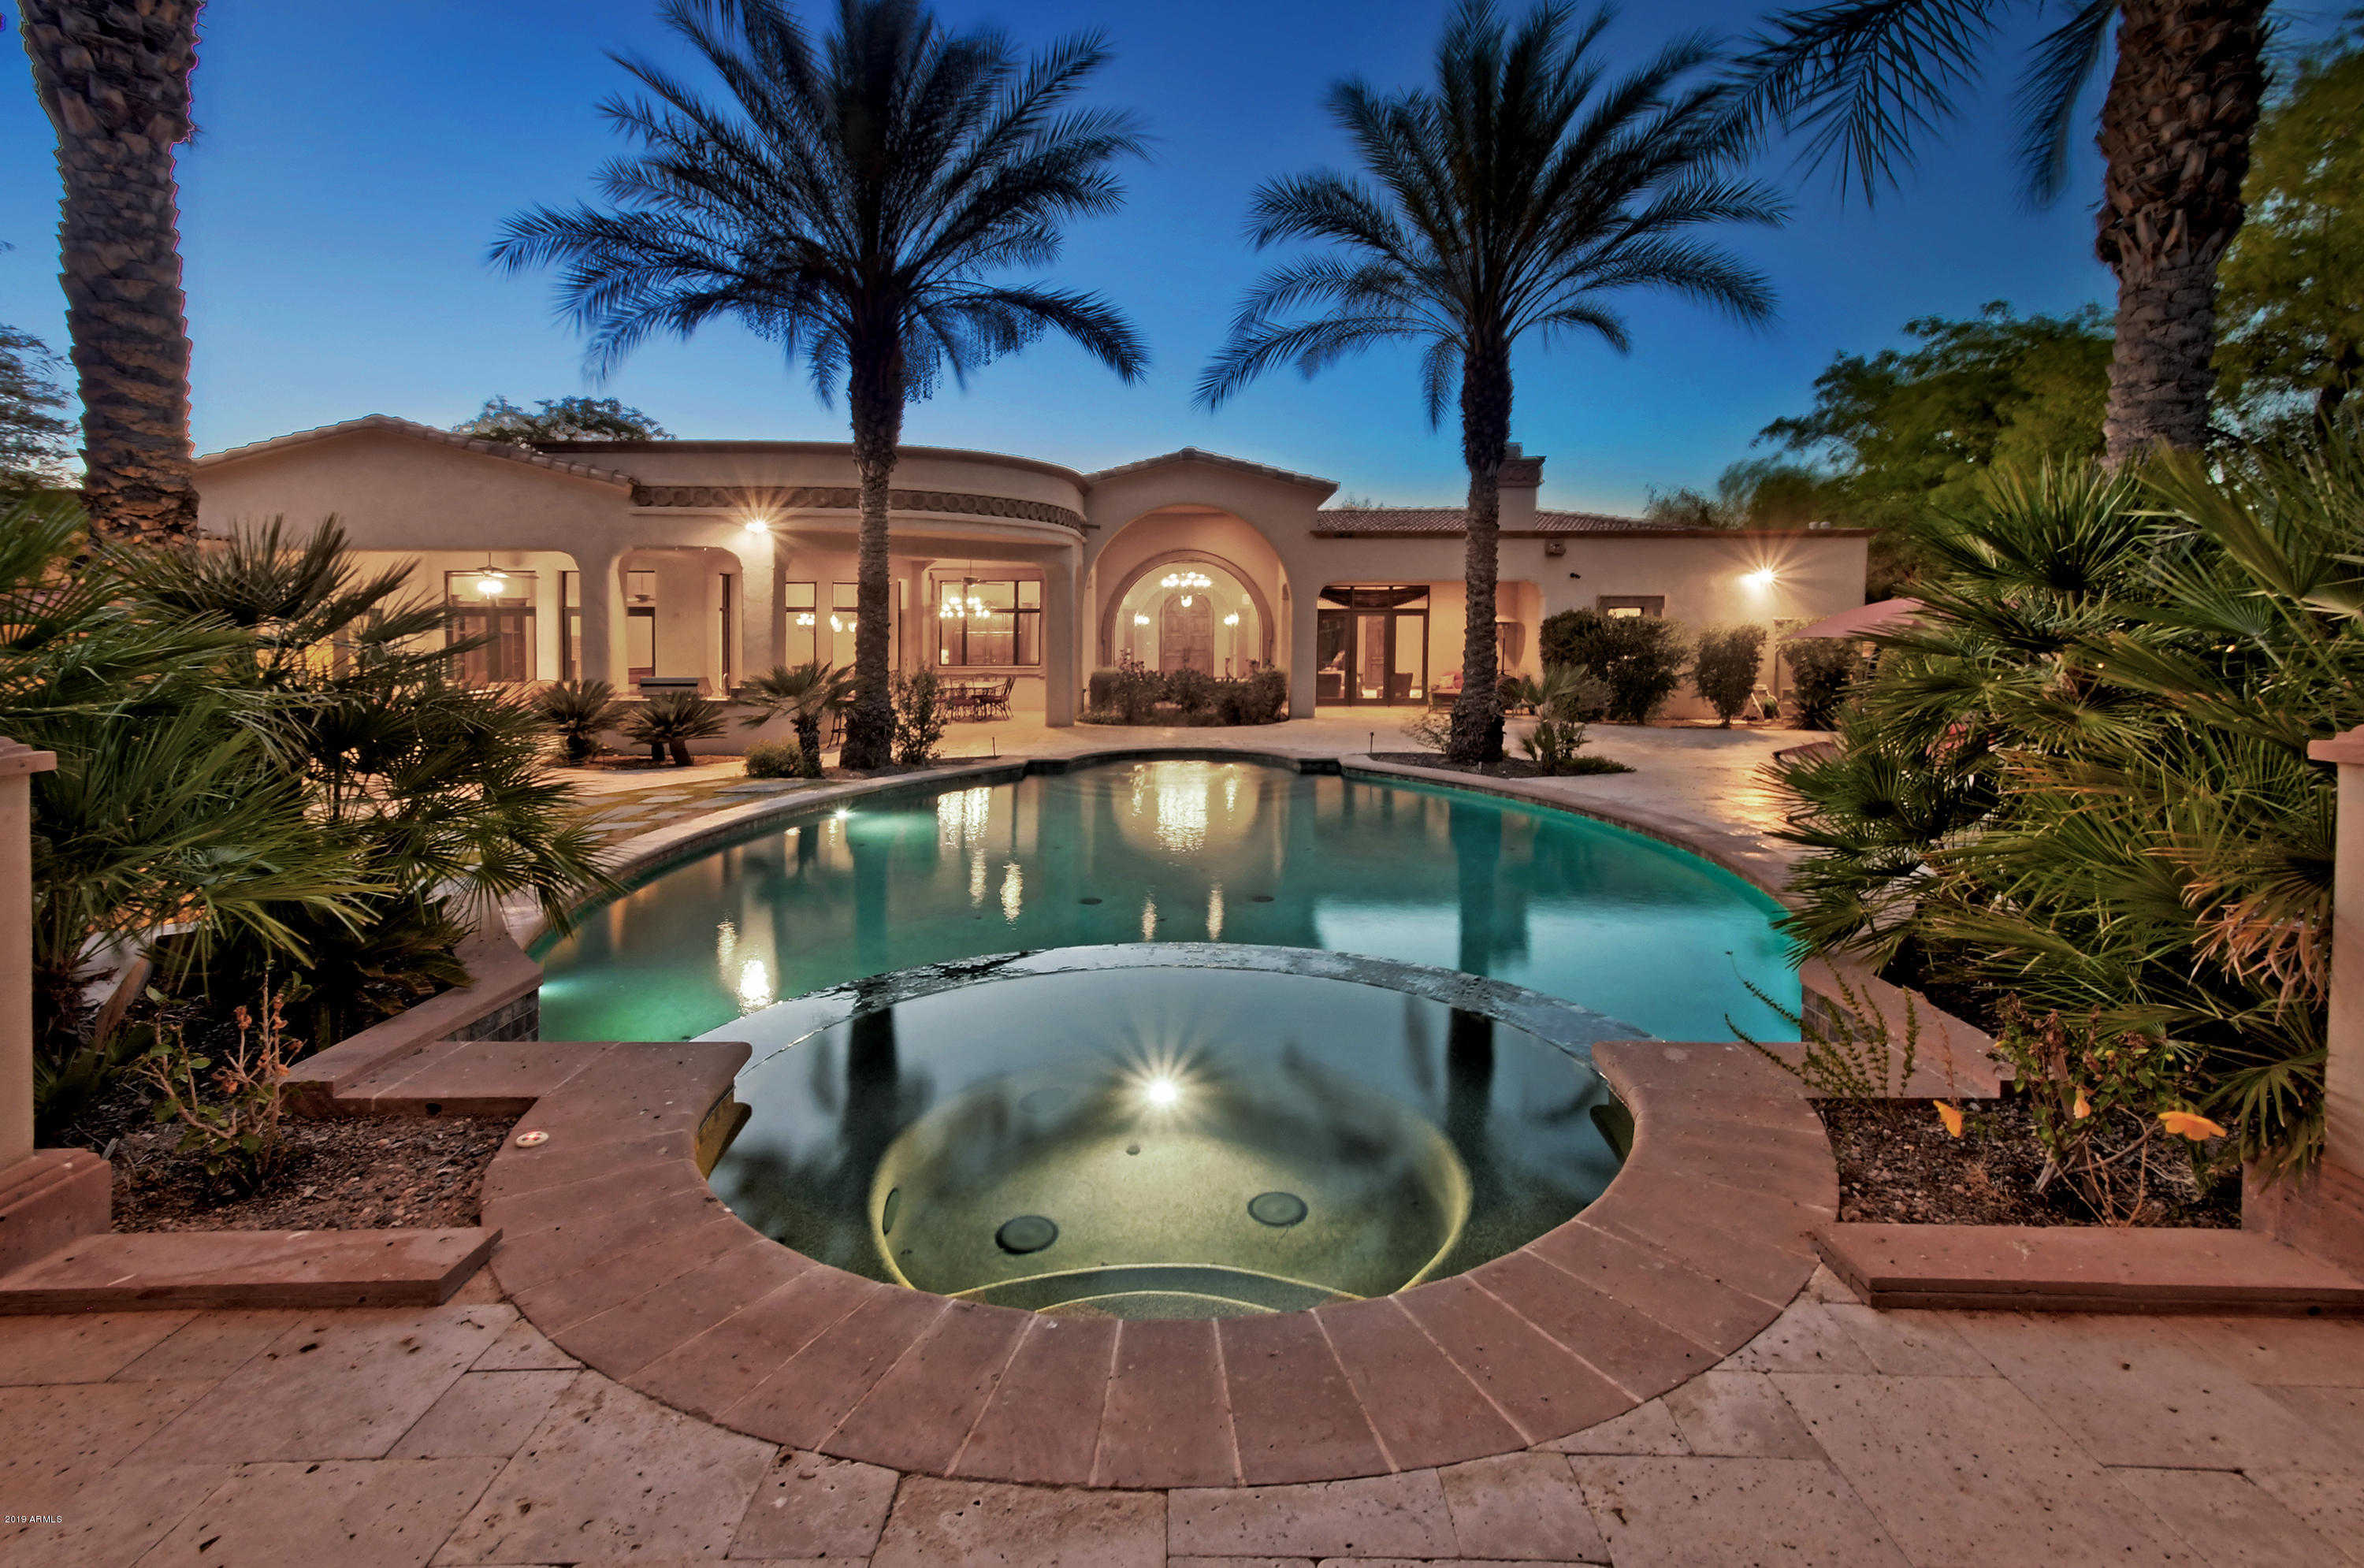 $3,500,000 - 5Br/6Ba - Home for Sale in Turquoise Hills, Paradise Valley